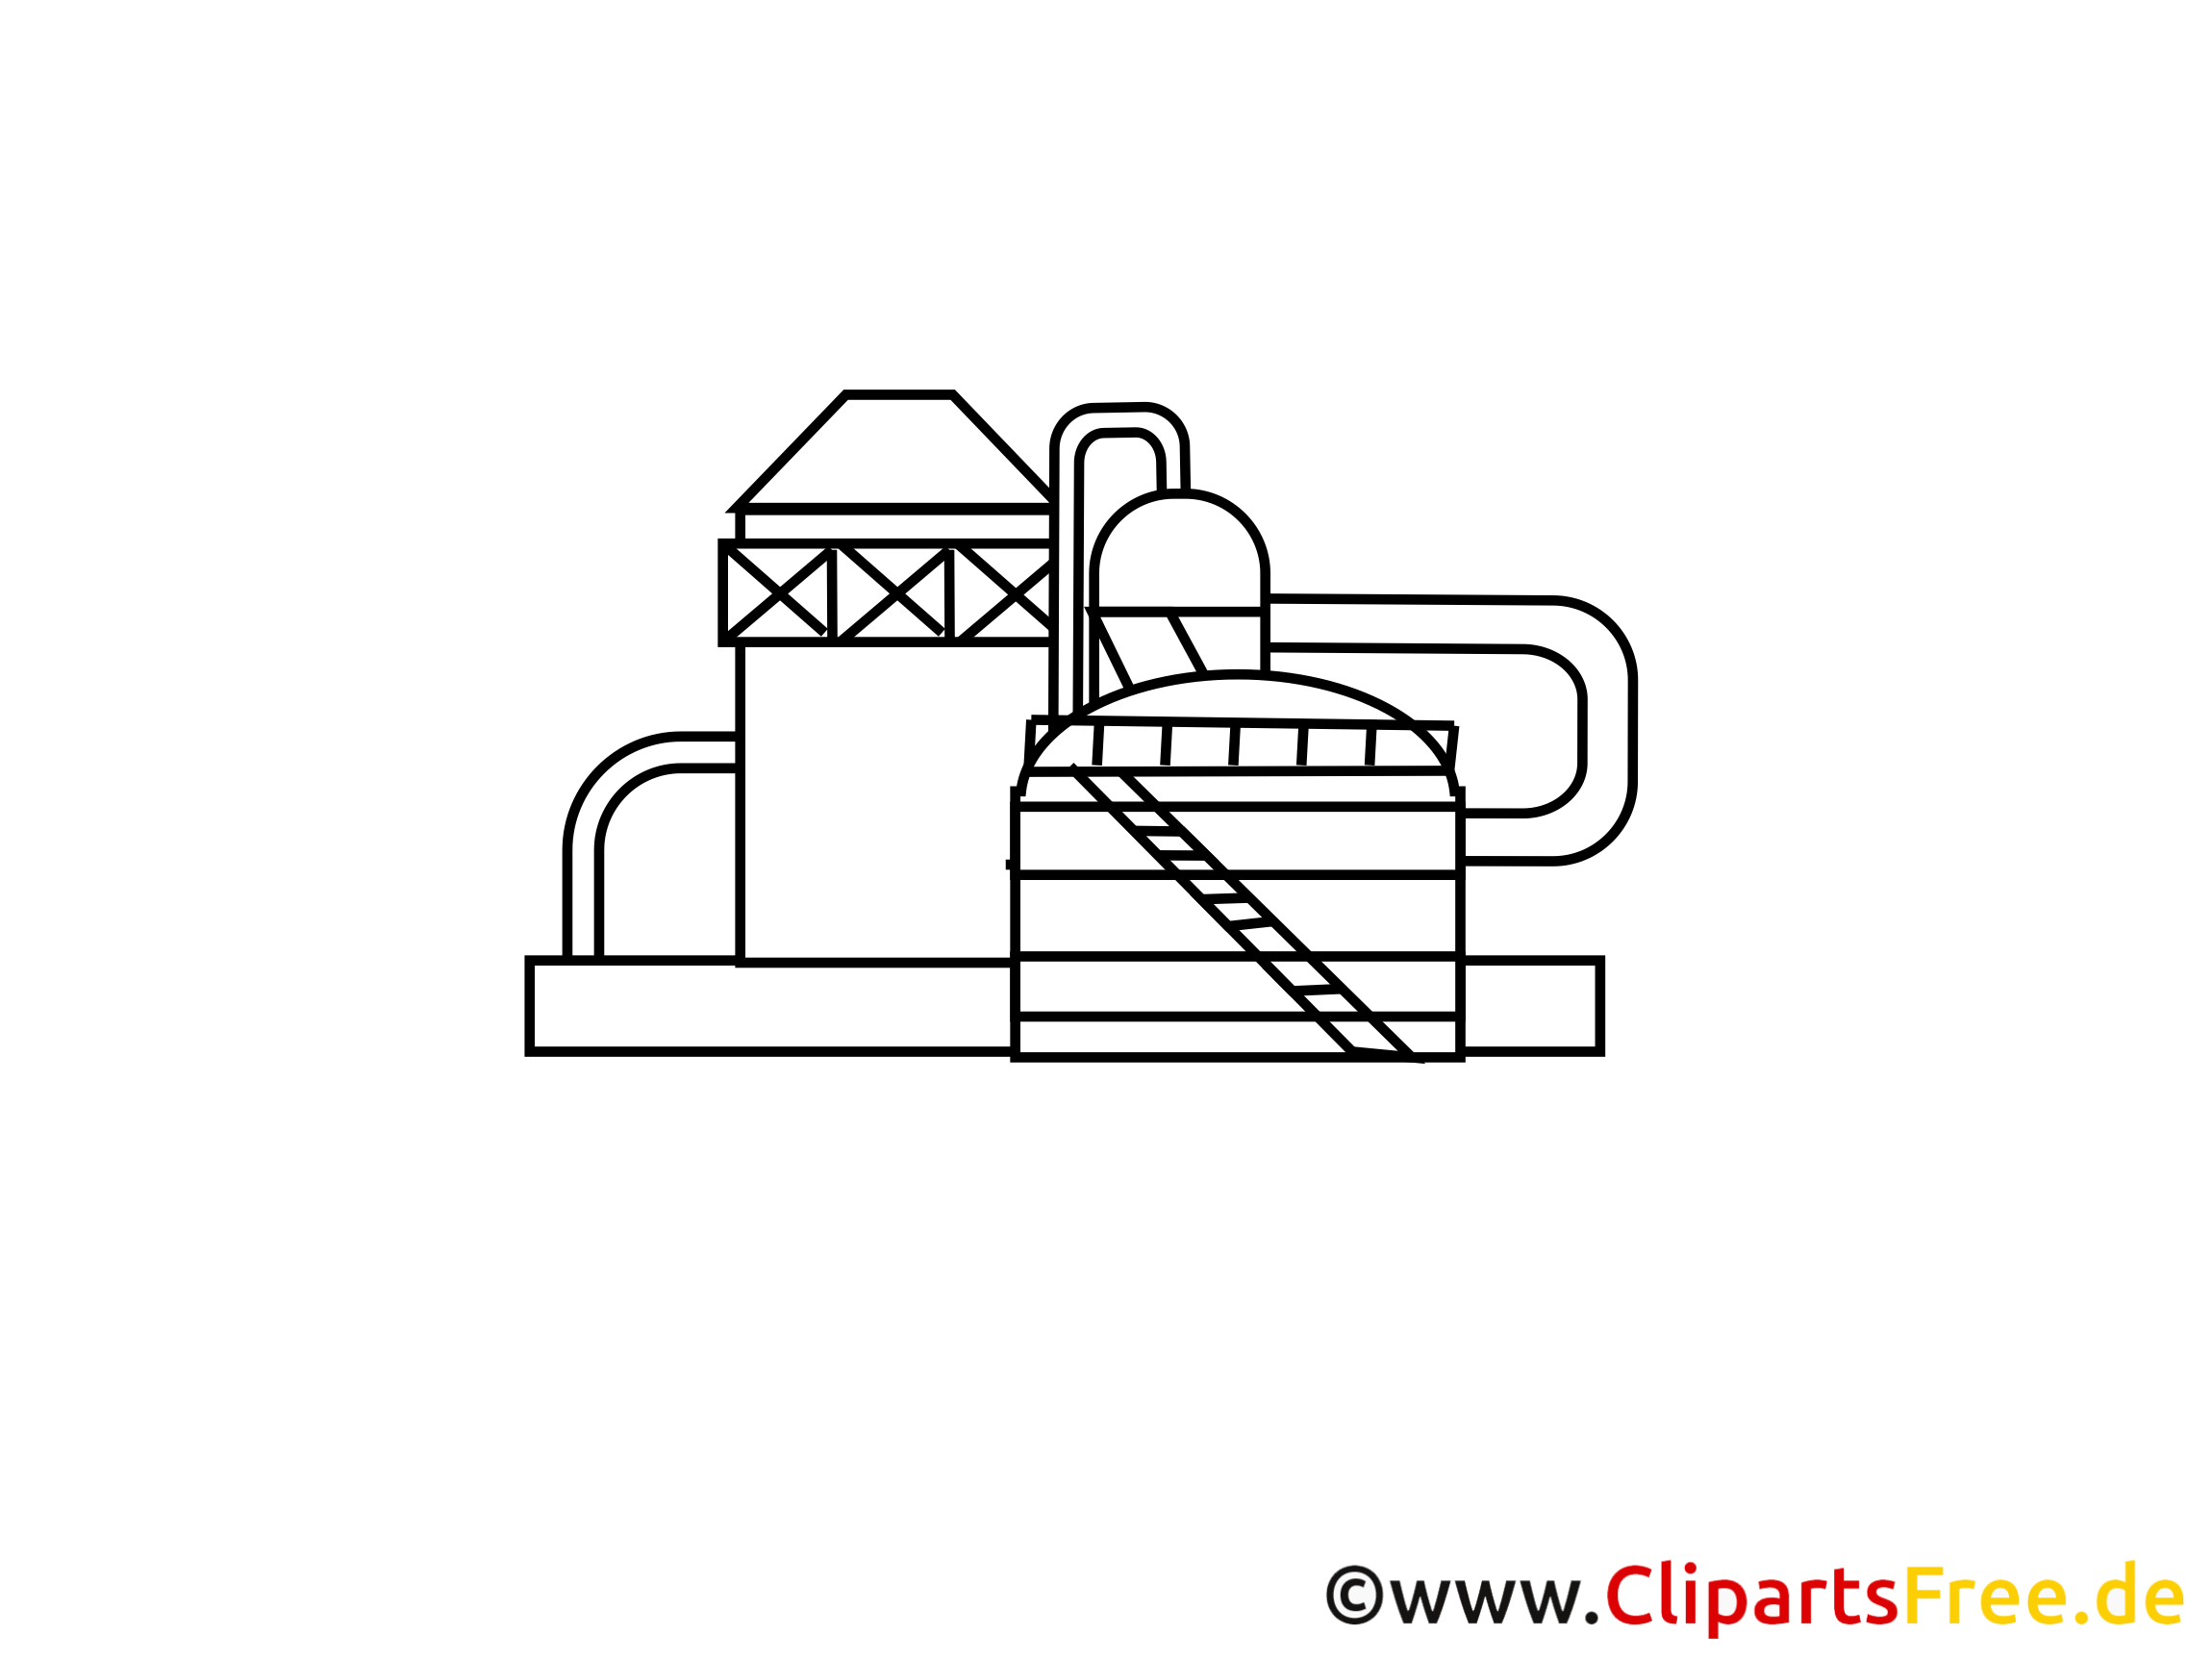 clipart usine gratuit - photo #13